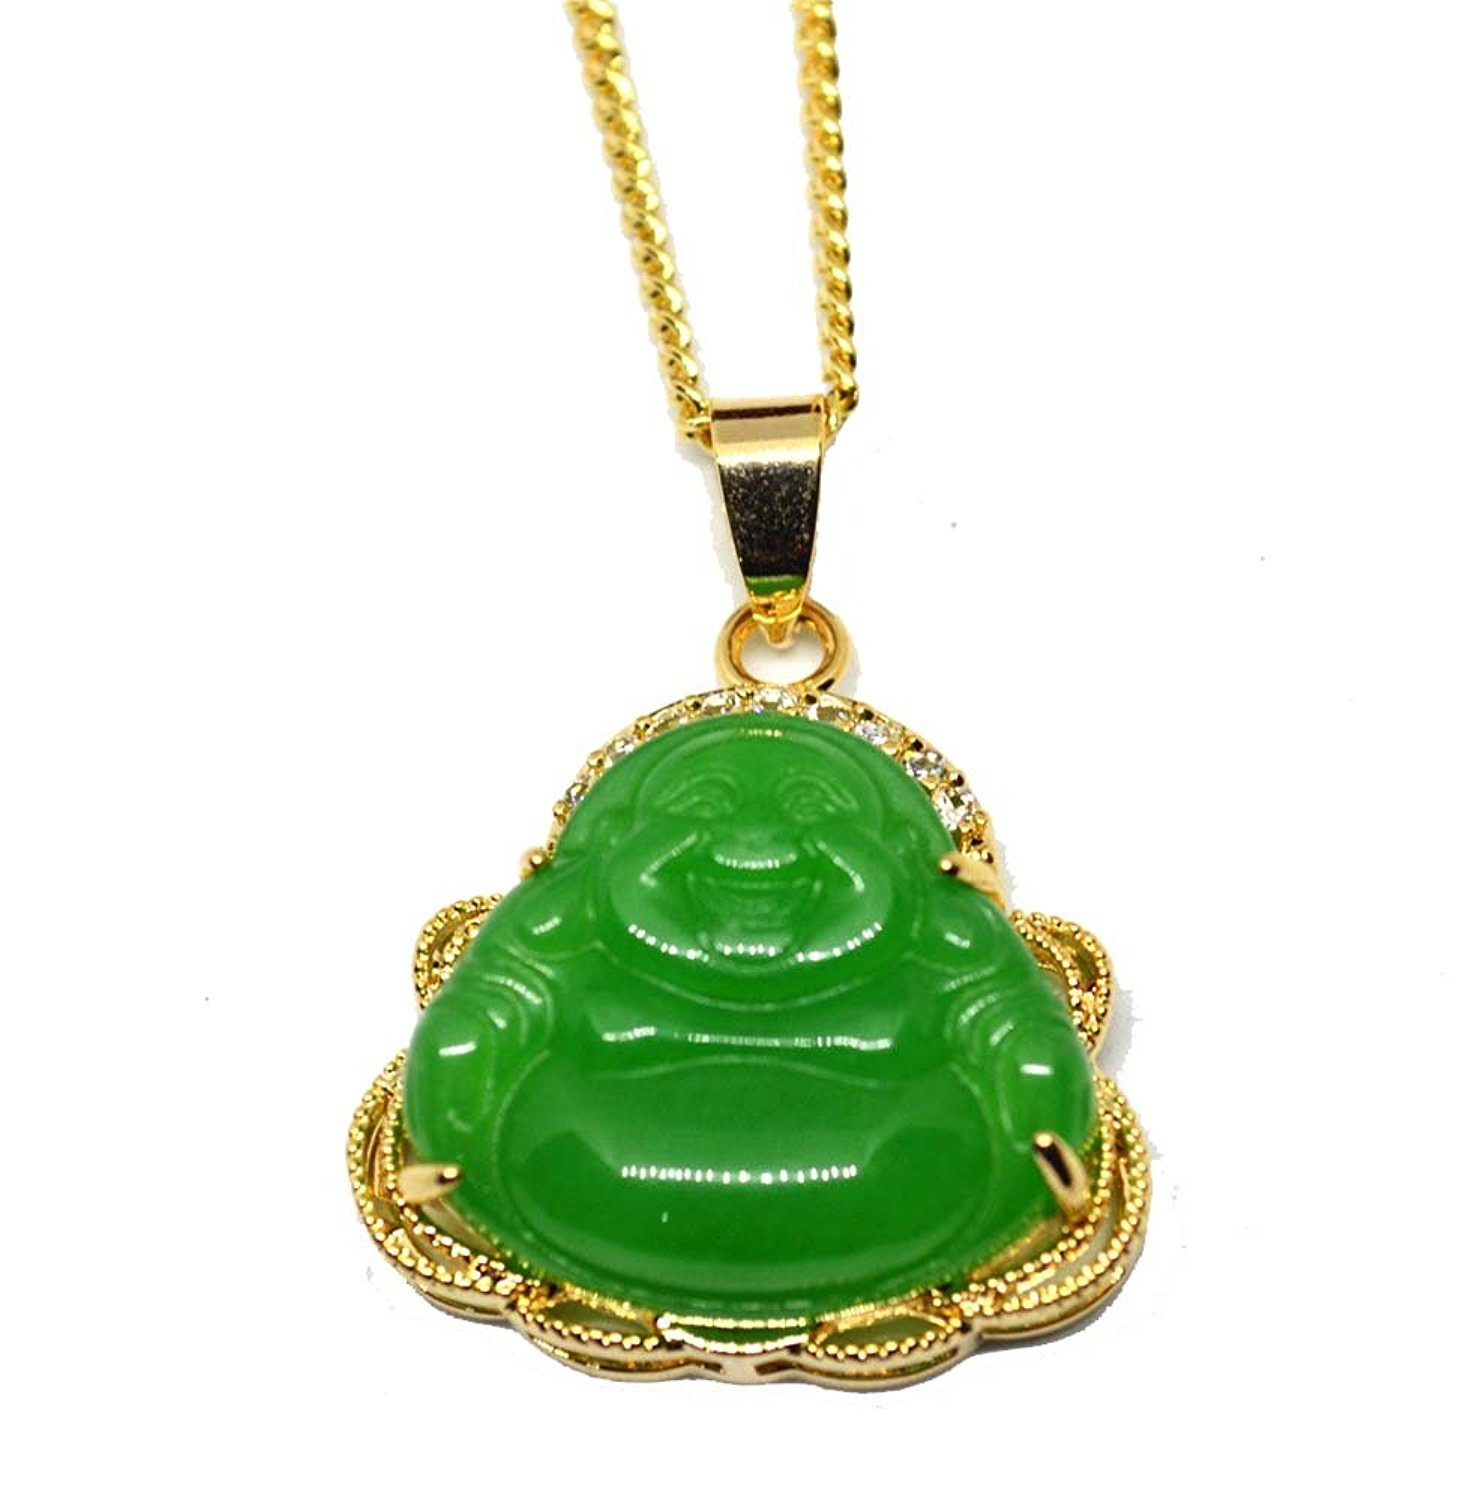 sample lucky necklace pendants patron natural trendy product women by saint jewelry necklaced shop yumten jade men jerry green crystal category buddha